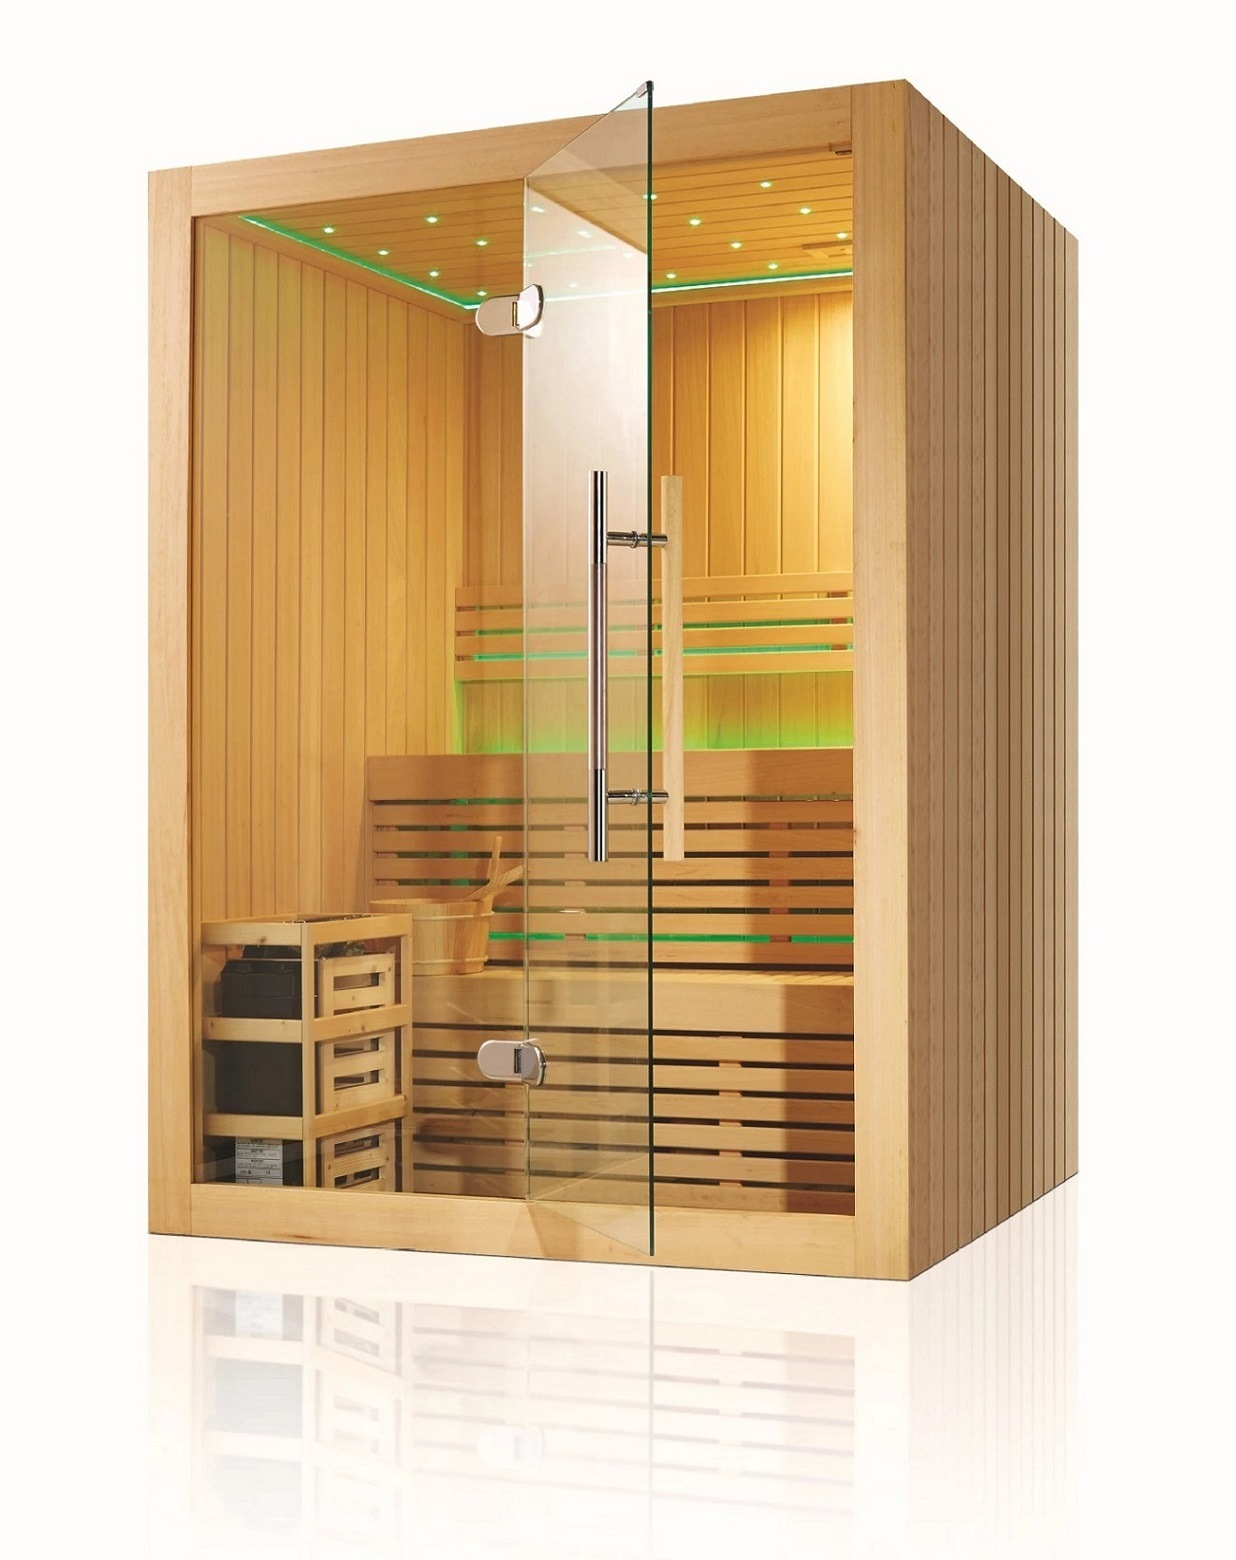 and collection product obento premium for sauna bath steam multi colston cabins cabin whirlpool luxury by massage function home room